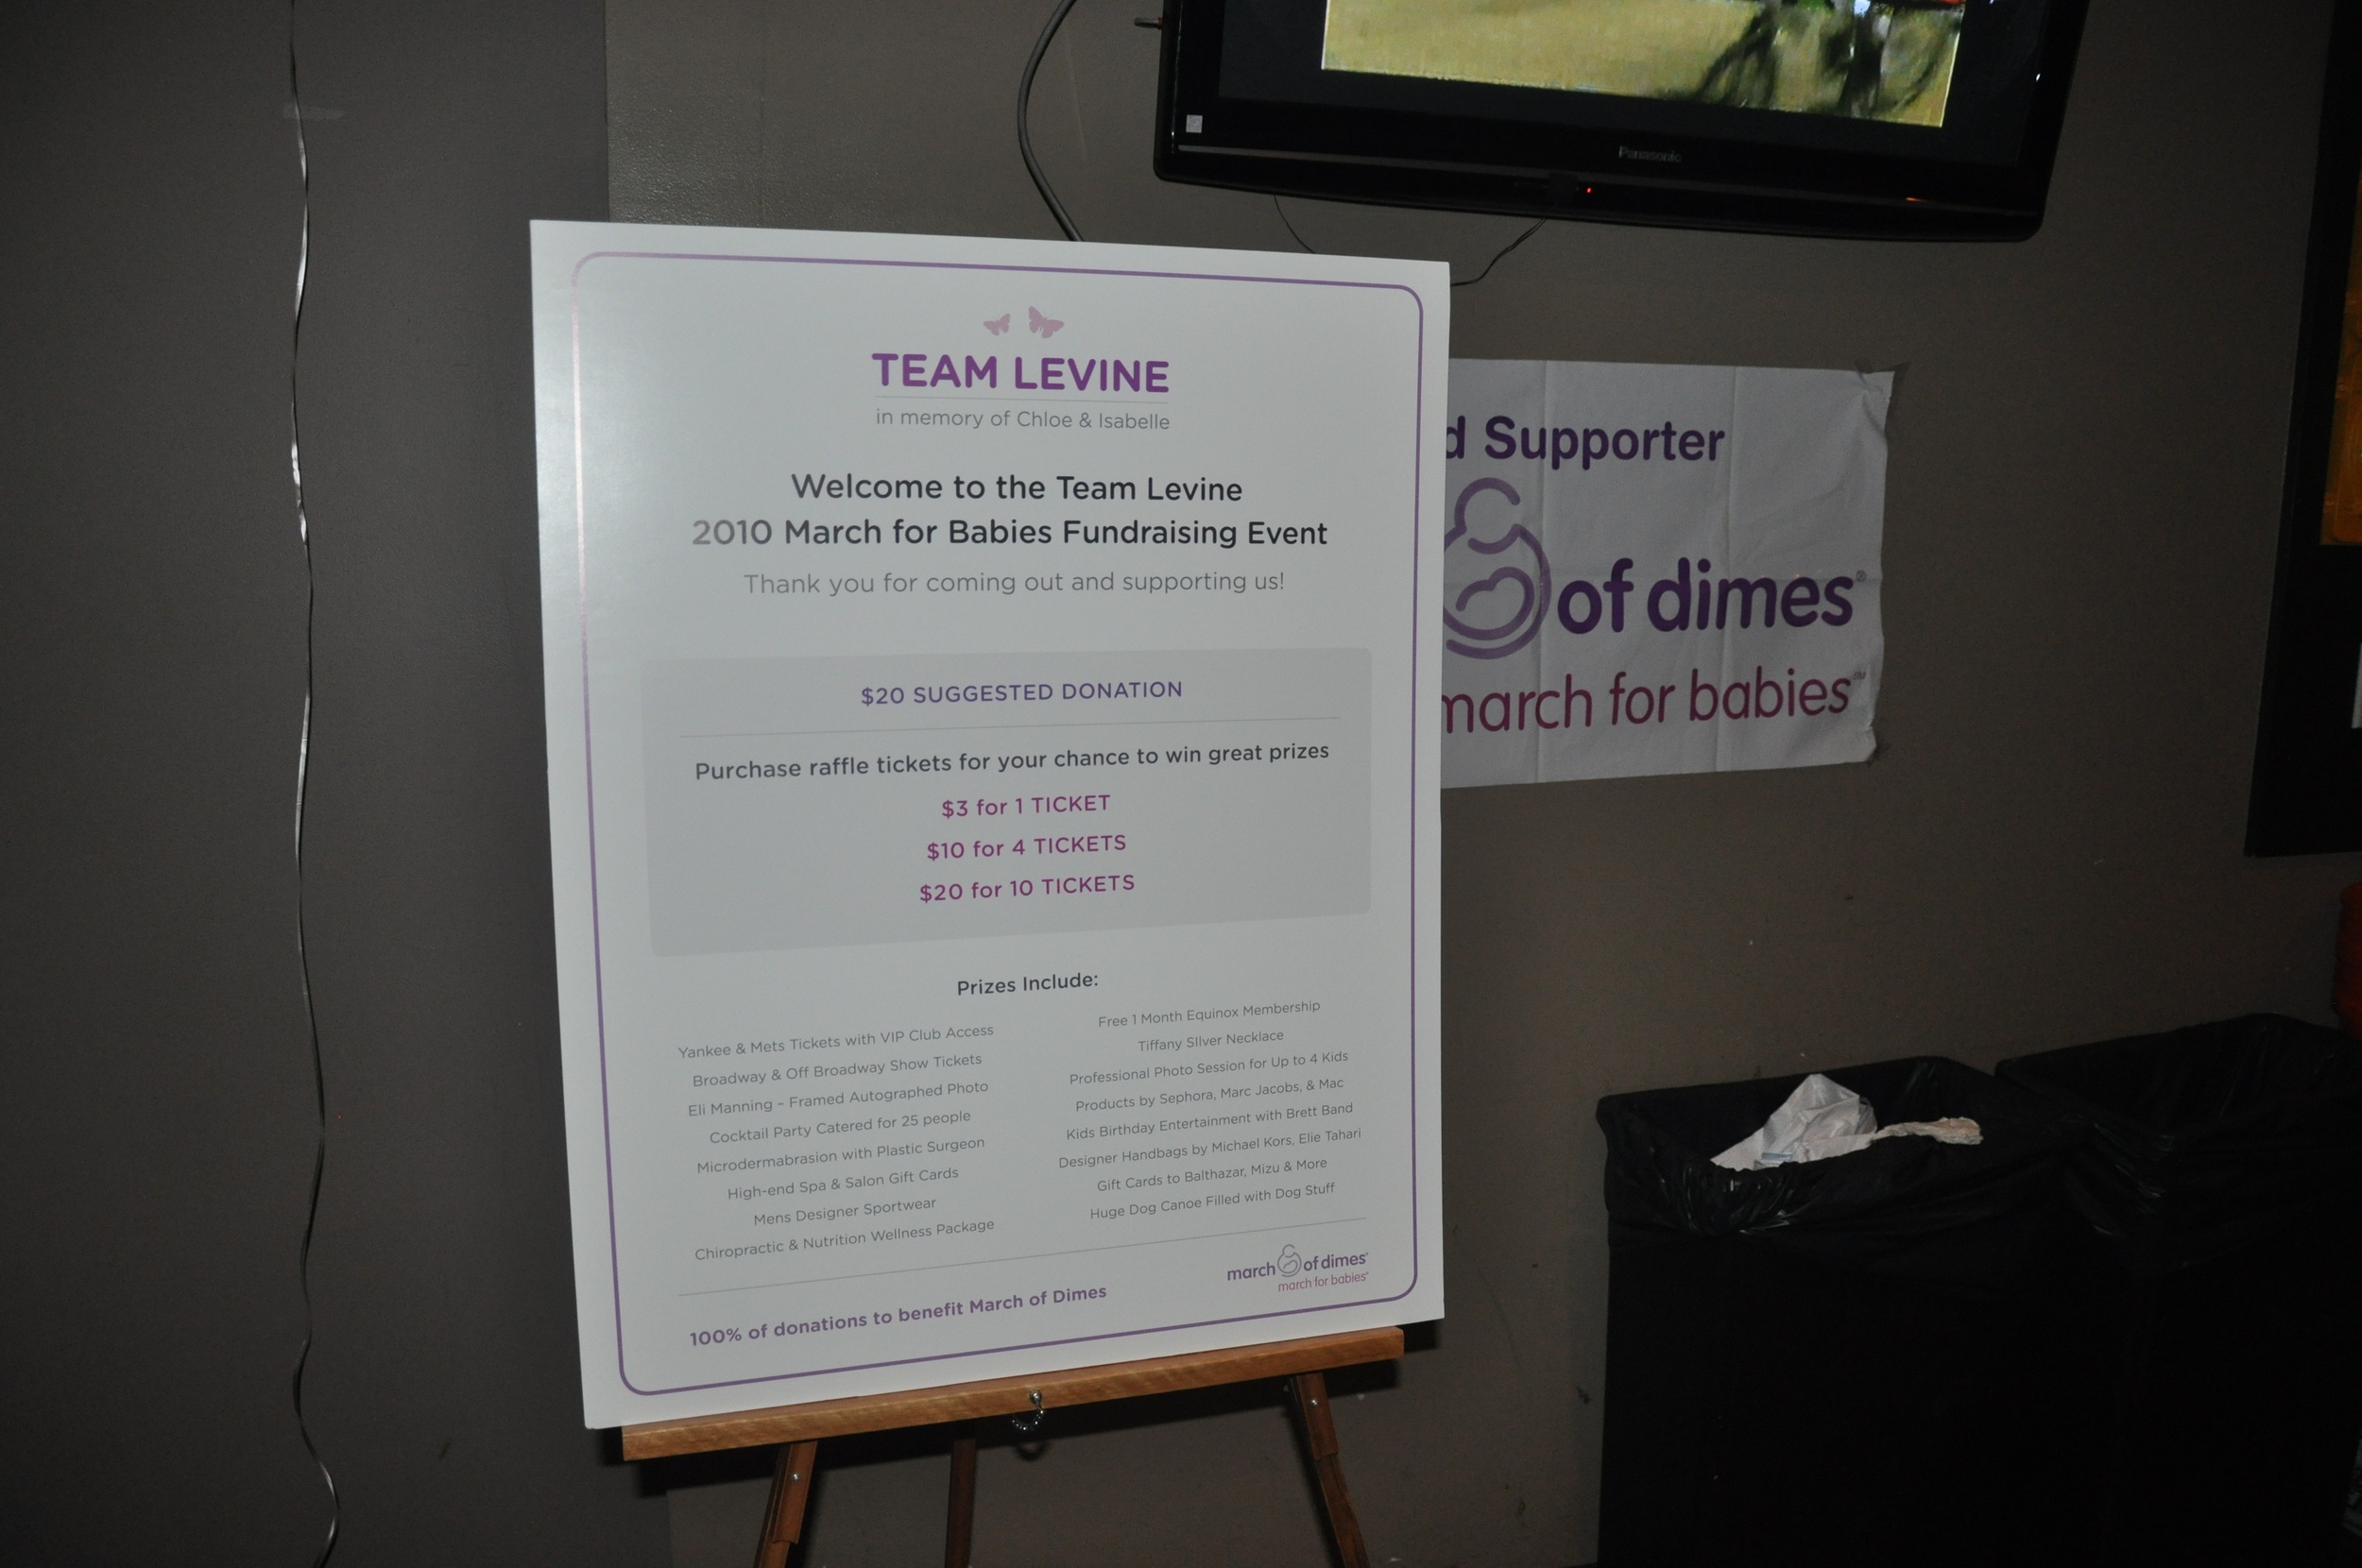 team-levine-kick-off-event_7016373109_o.jpg